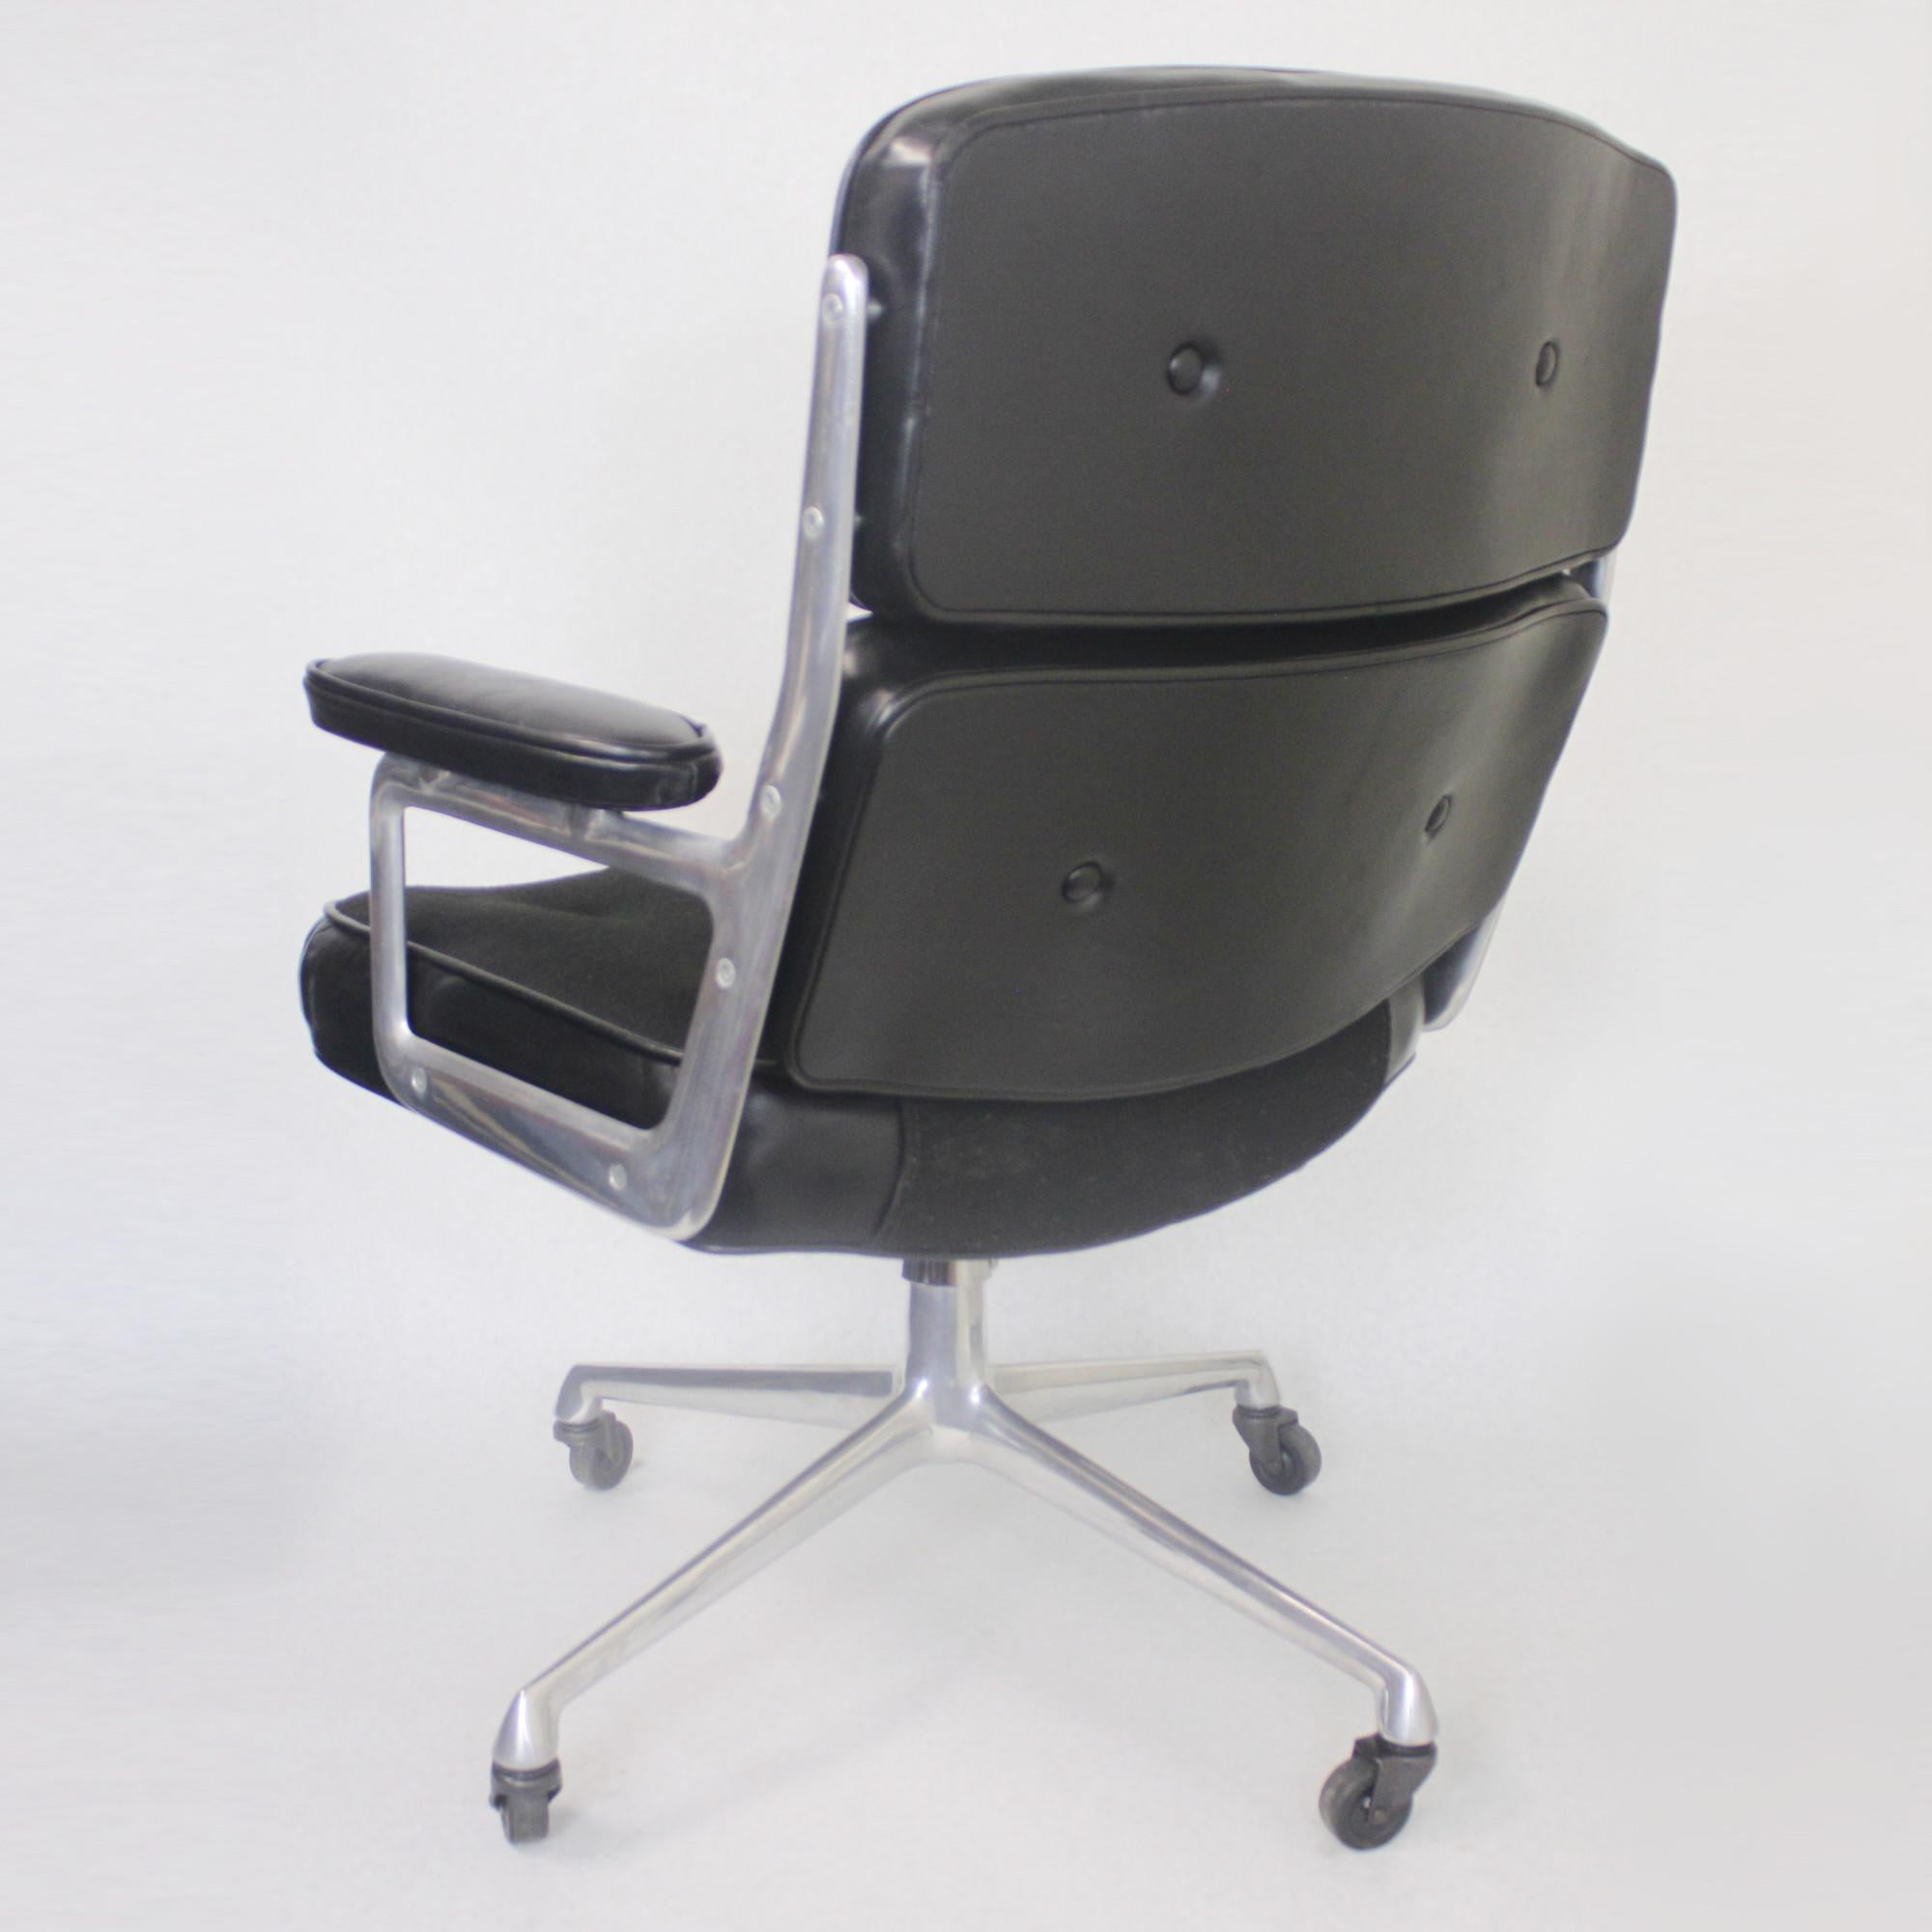 GroBartig 1960s Mid Century Modern Herman Miller Time Life Executive Desk Lounge  Chair For Sale At 1stdibs